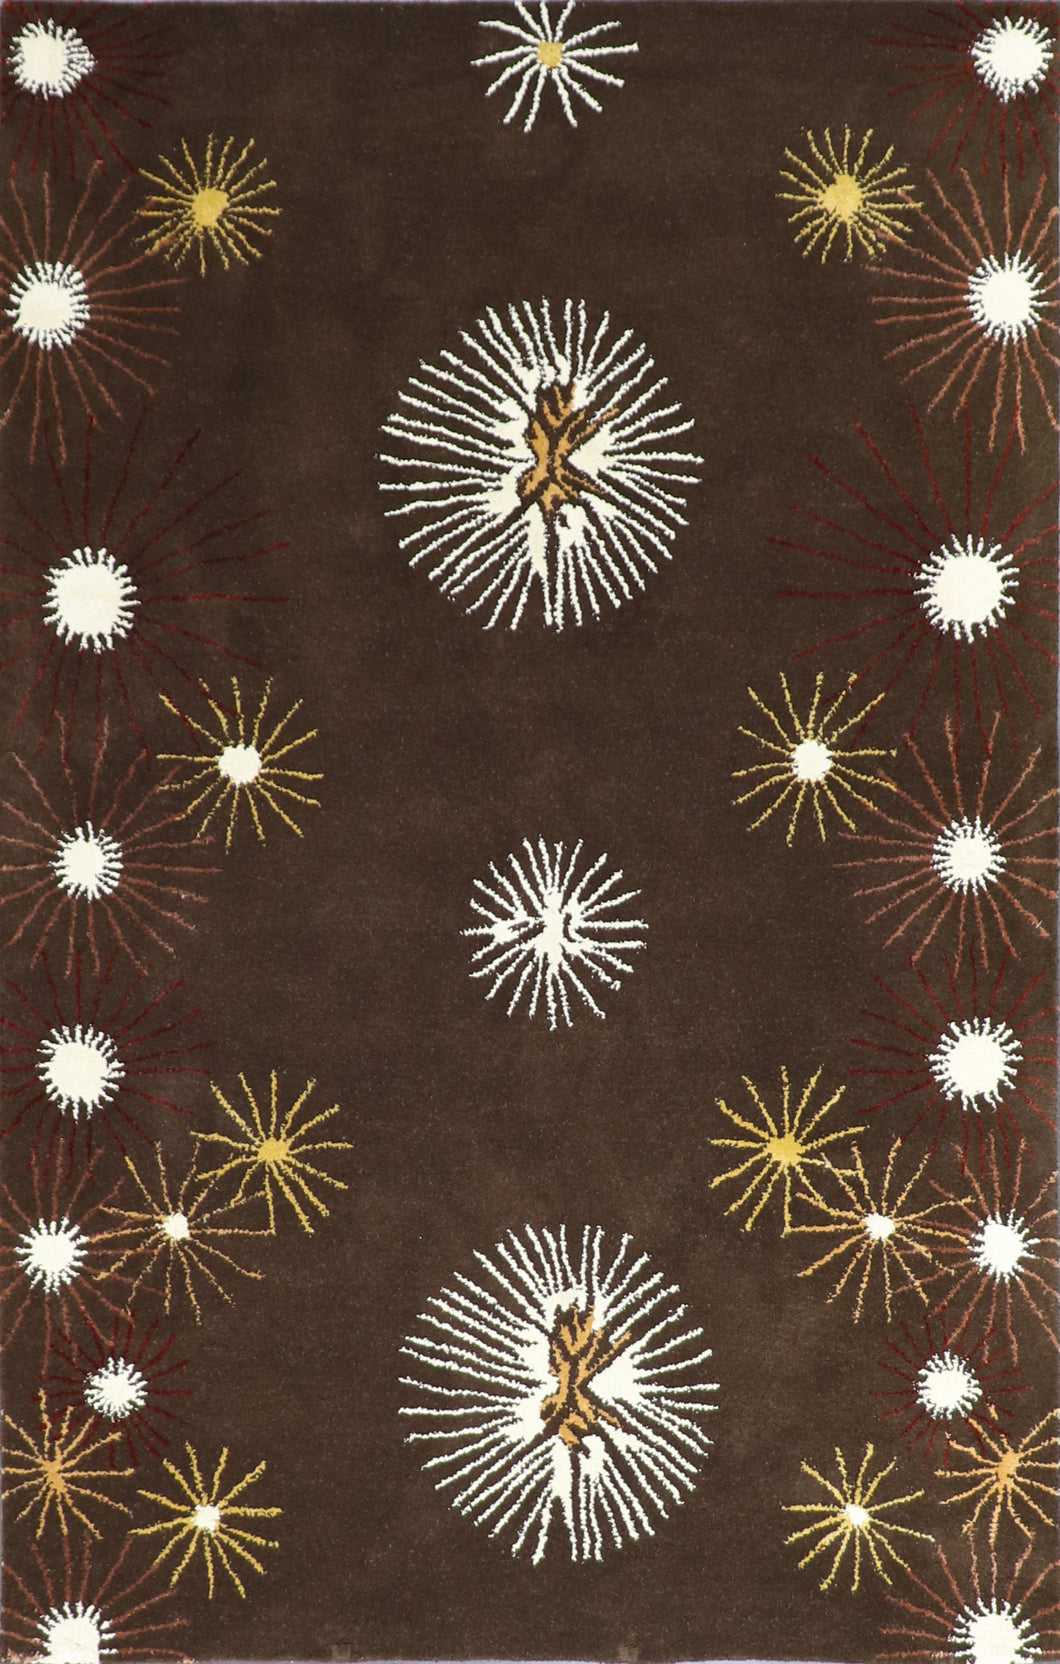 5'x8' Contemporary Brown Wool & Silk Hand-Knotted Rug